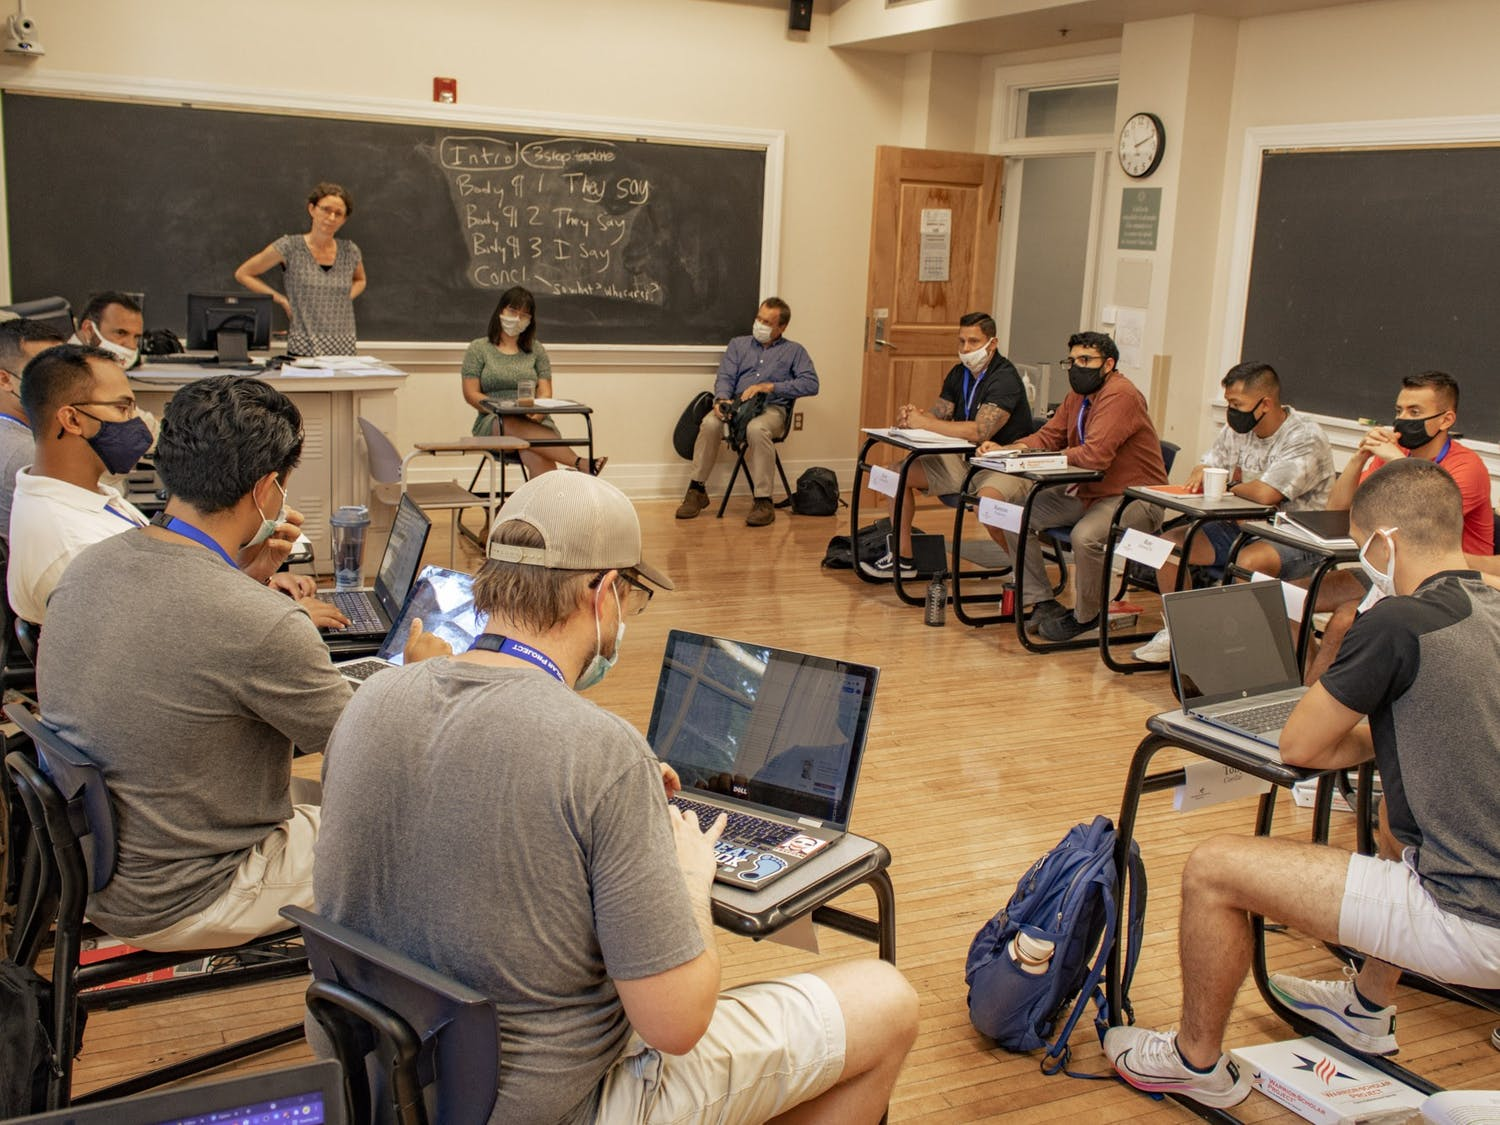 Under the Warrior-Scholar Project, a cohort of veterans went through a week-long education program intended to prepare them for life as nontraditional college students. The cohort is pictured in Murphey Hall on July 27, 2021.